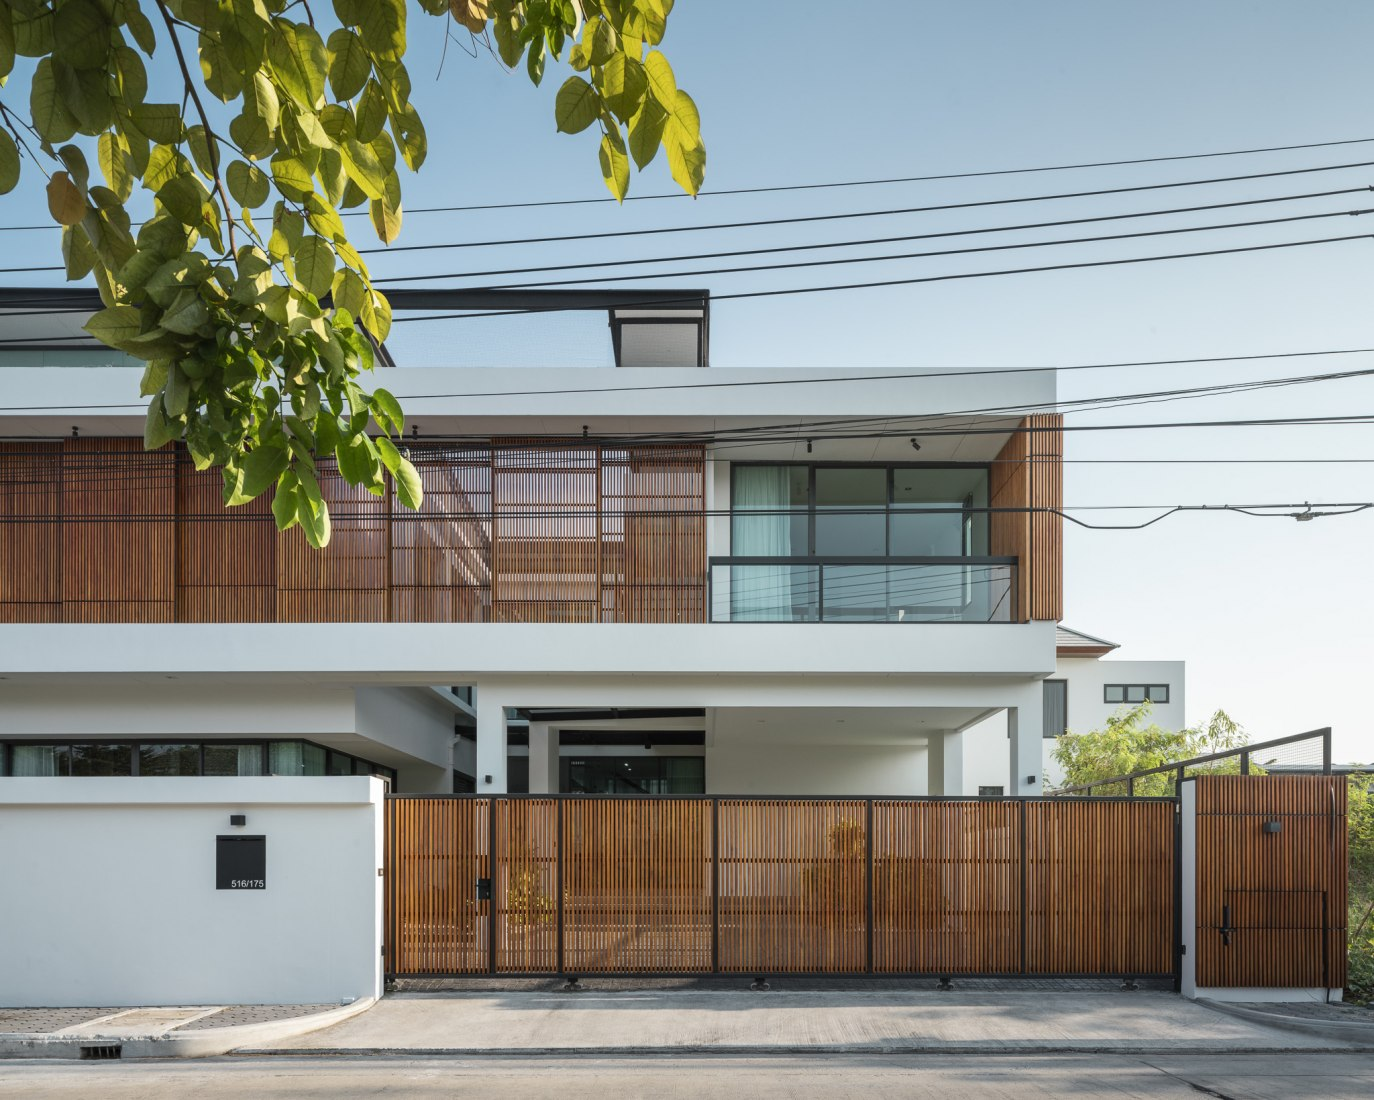 Bangkae House by Archimontage. Photograph by Chalermwat Wongchompoo | Sofography.